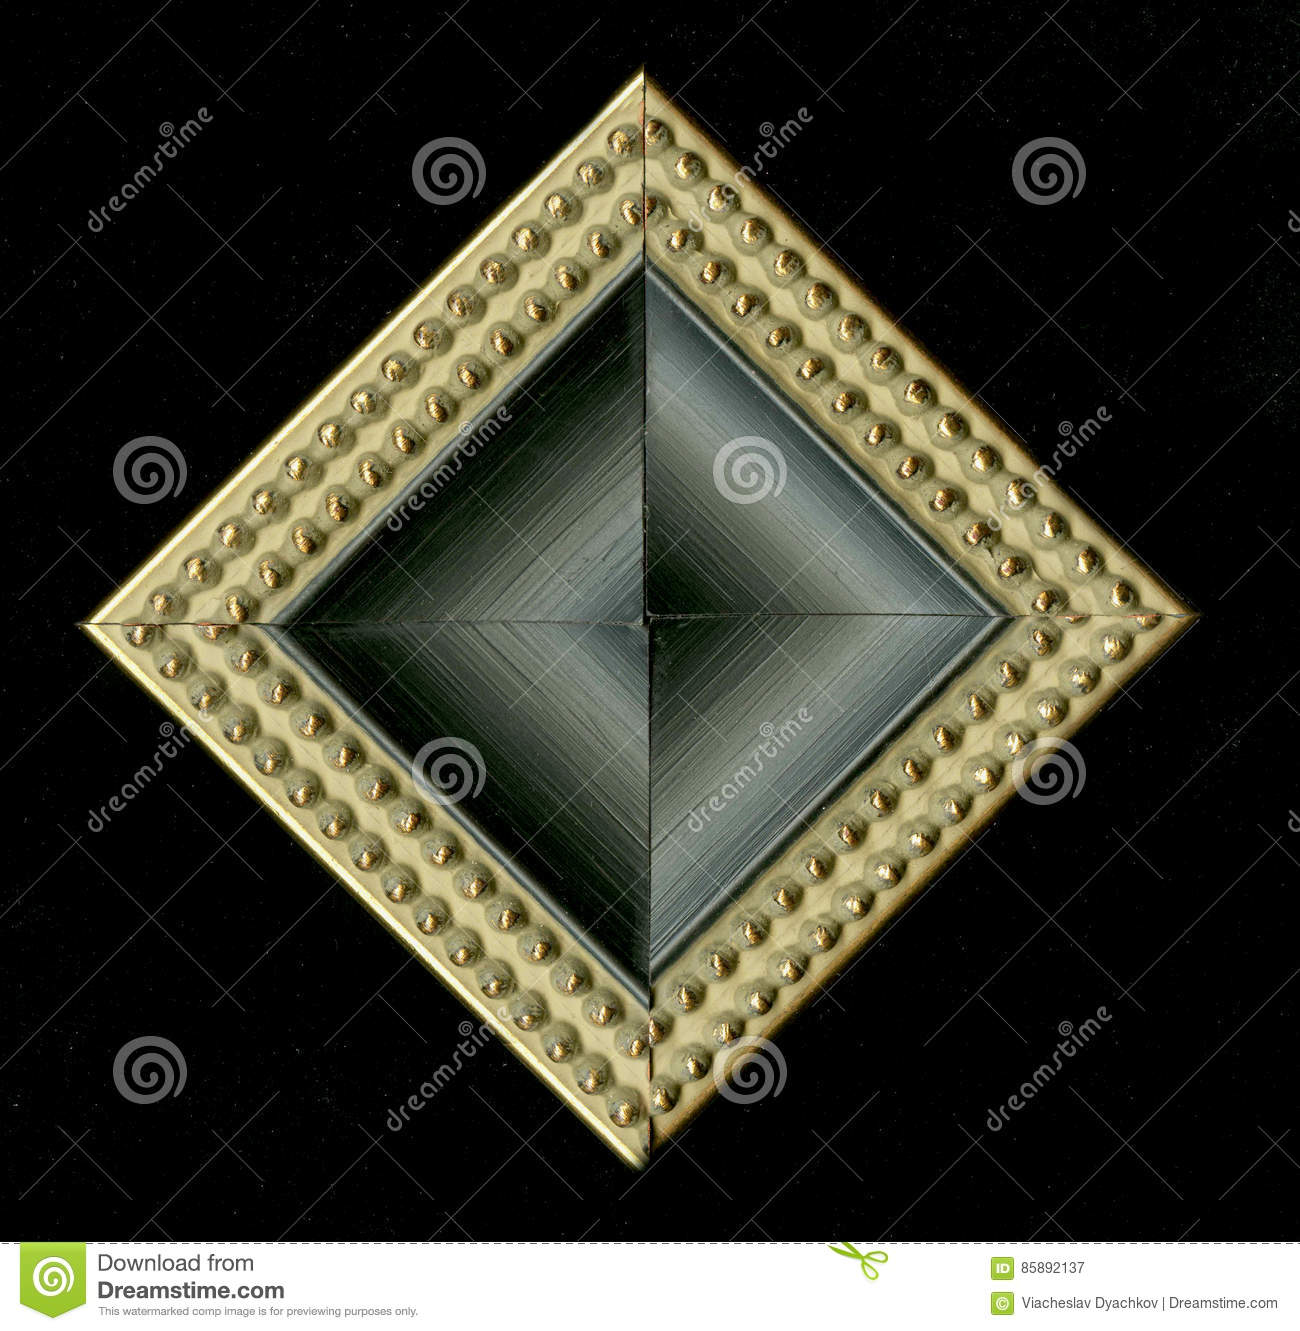 tetrahedral square decorative rosette of wooden framing strips royalty free stock photography. Black Bedroom Furniture Sets. Home Design Ideas